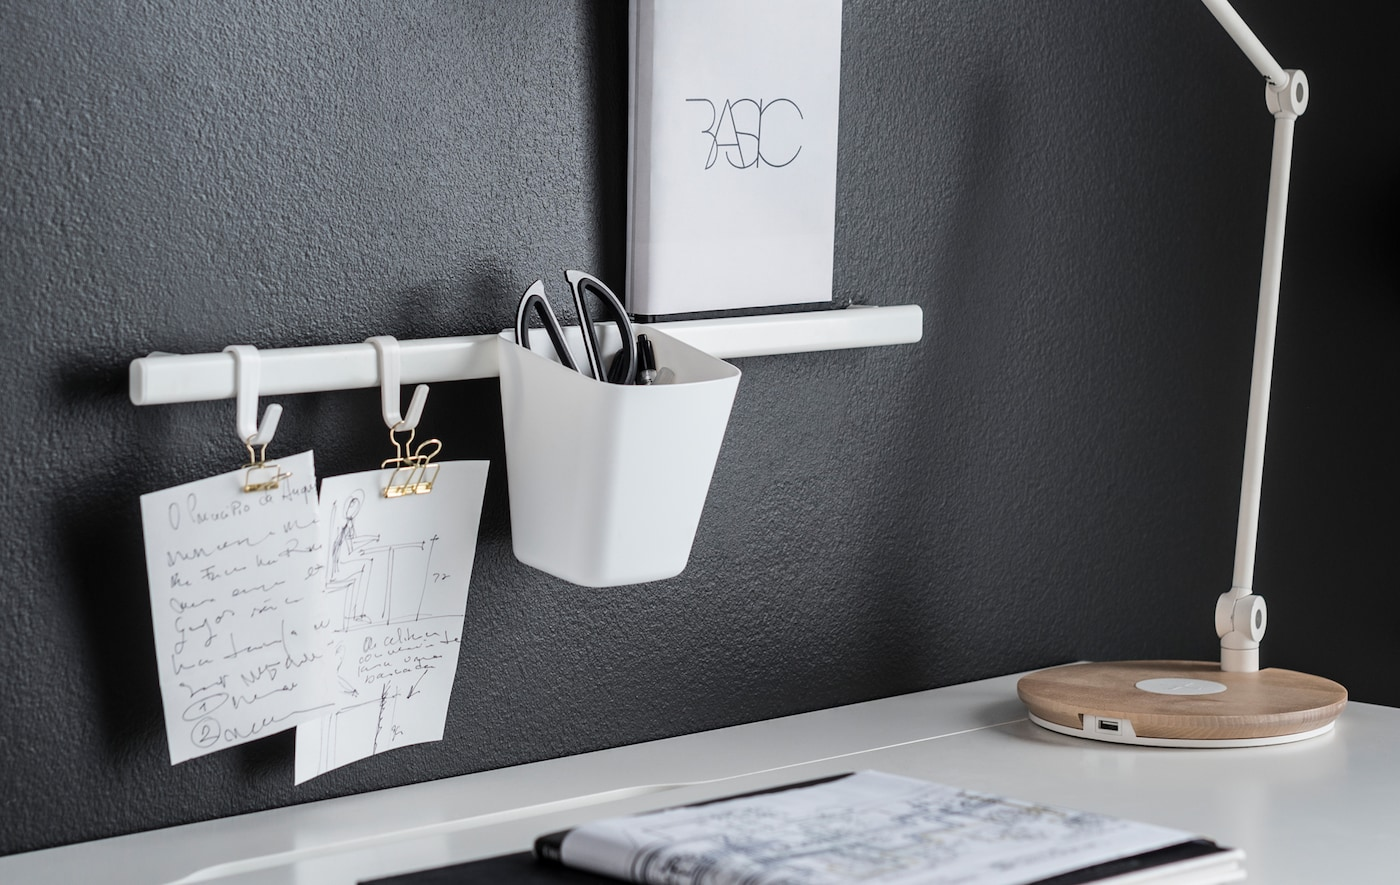 A closeup of a small white rail mounted to a wall, holding a few clipped notes and white cup holder on white hooks.